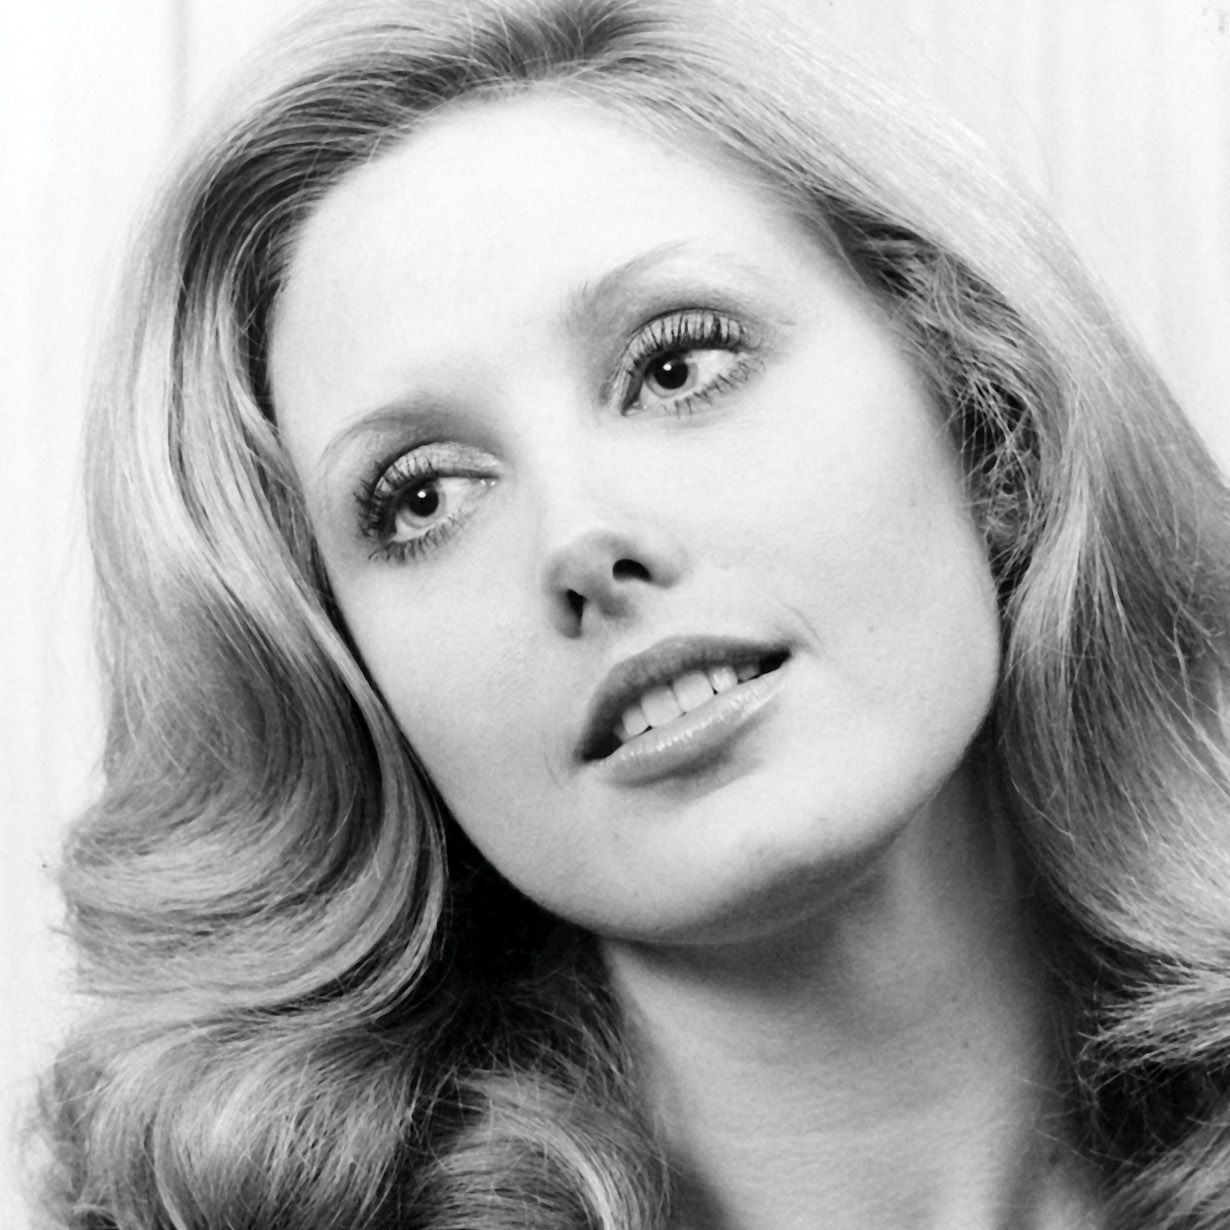 SEARCH FOR TOMORROW, Morgan Fairchild (1973-77), 1951-86